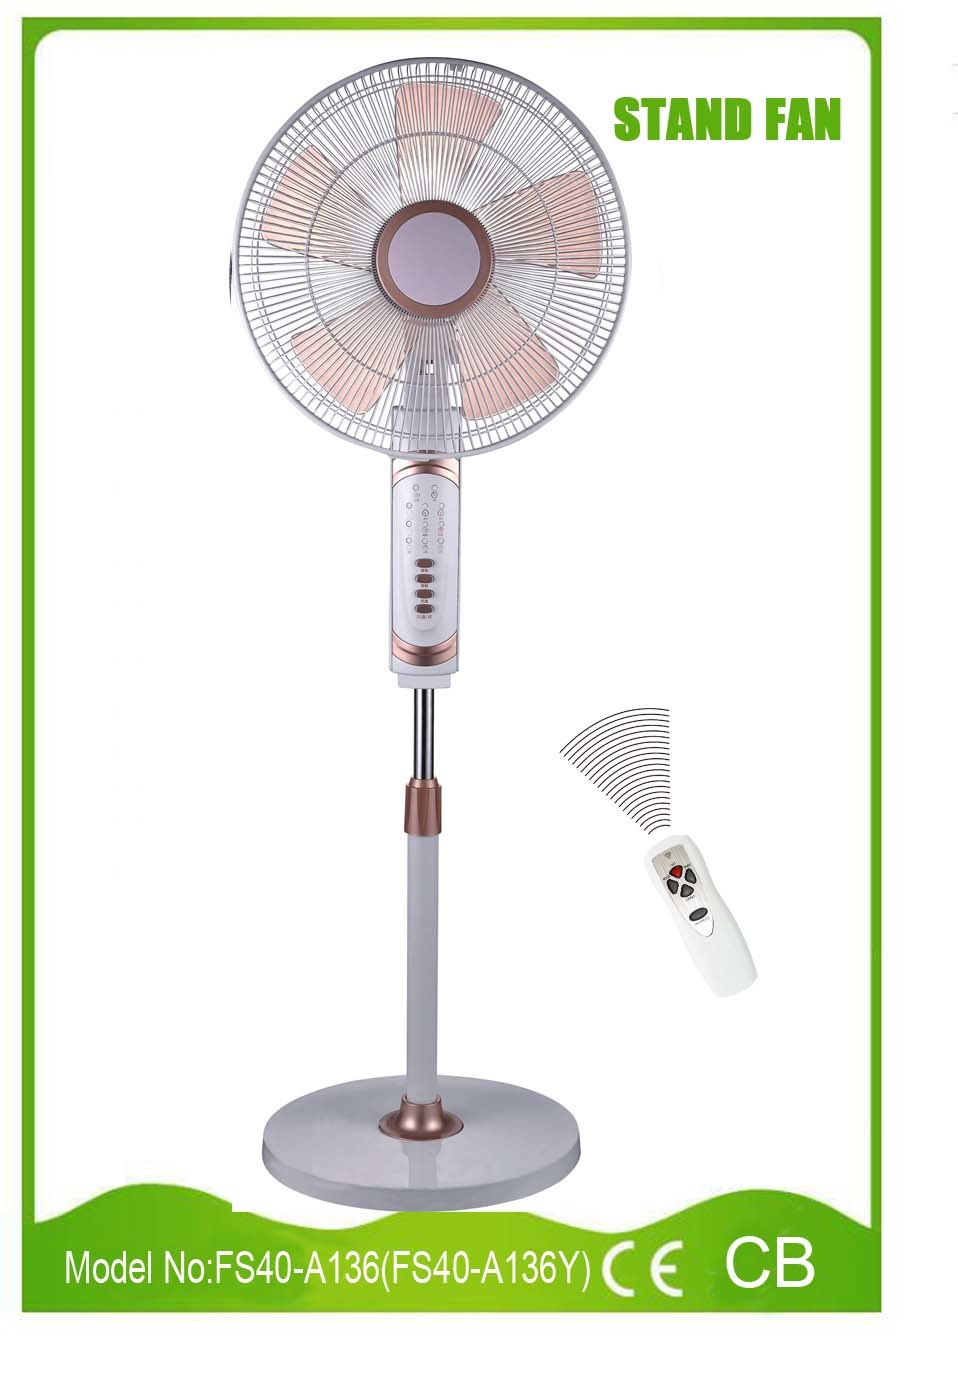 New Design Good Quality 16 Inch Stand Fan with Ce CB Certificate (FS40-A136)